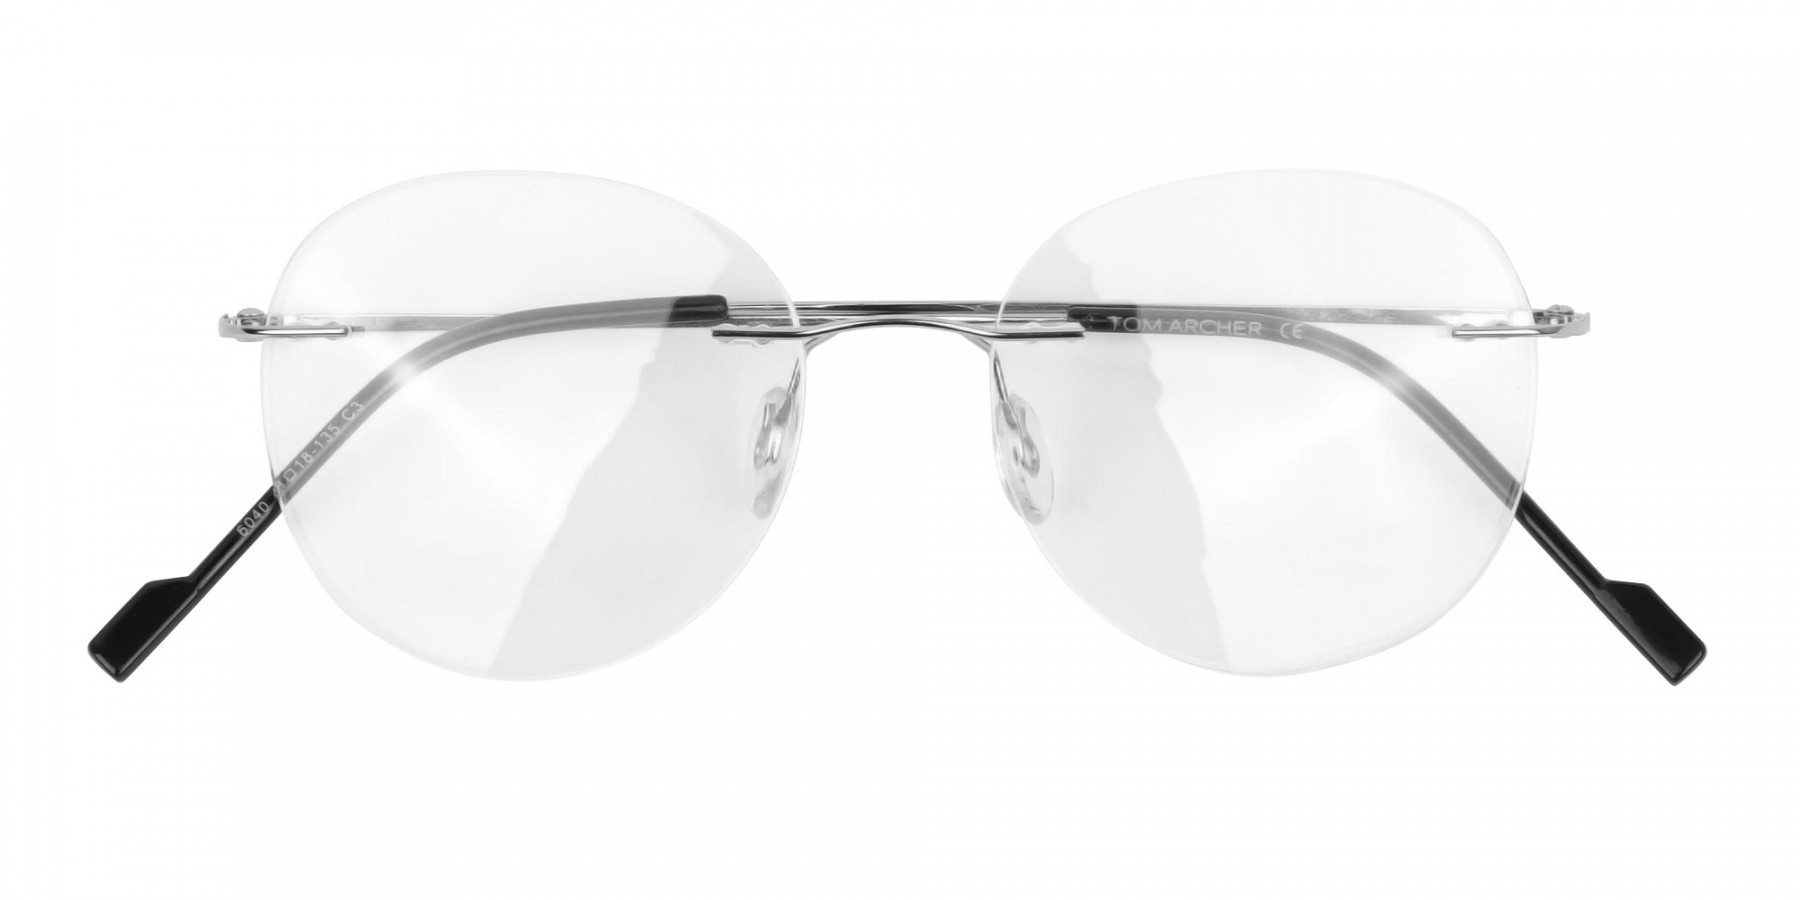 Silver Rimless Round Glasses in Metal-1